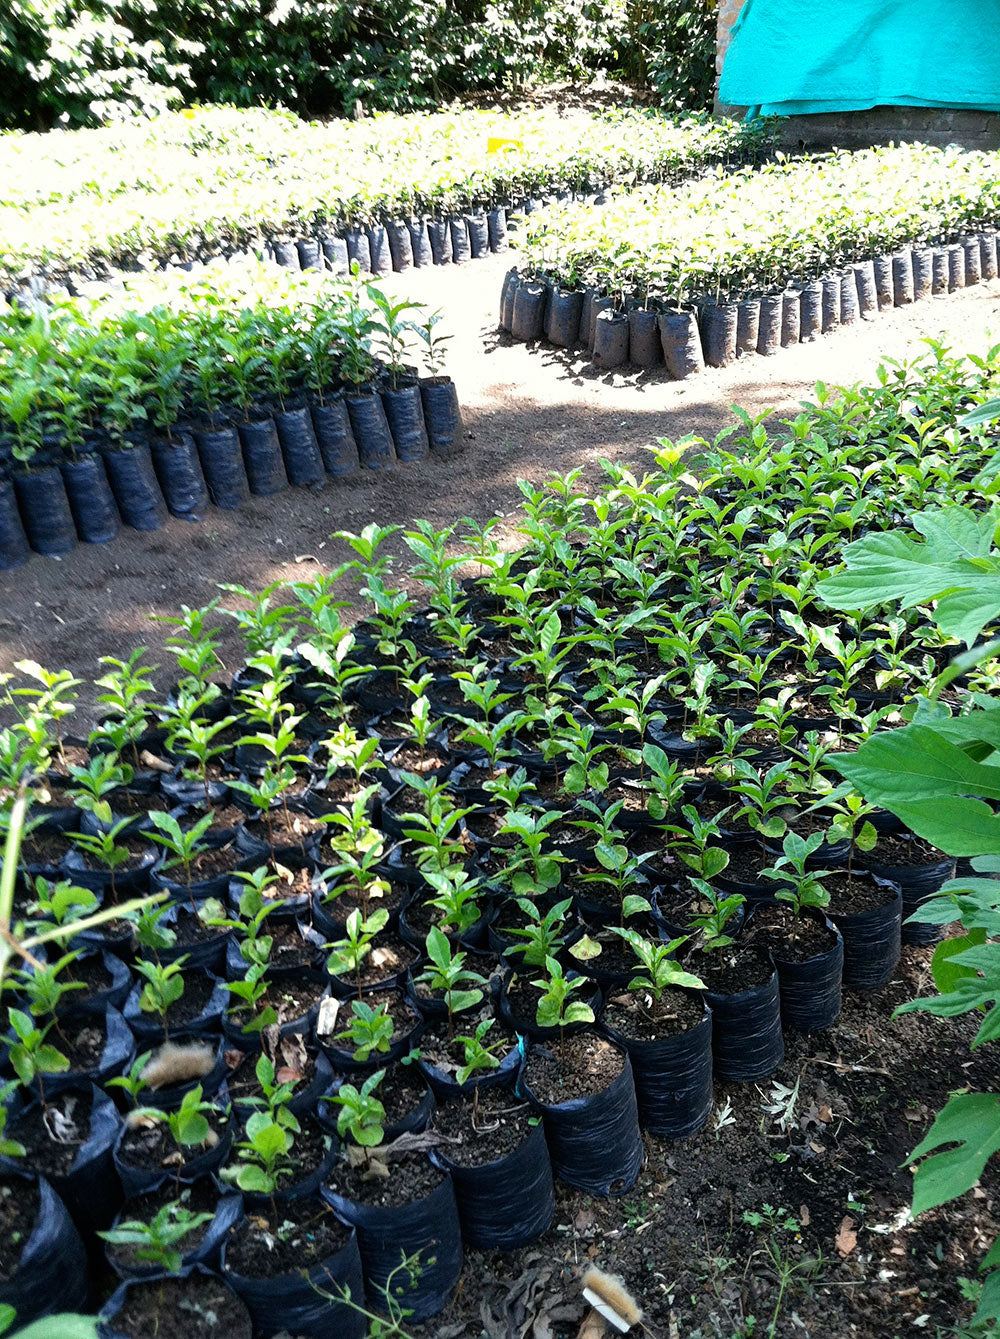 The nursery at Granja La Esperanza